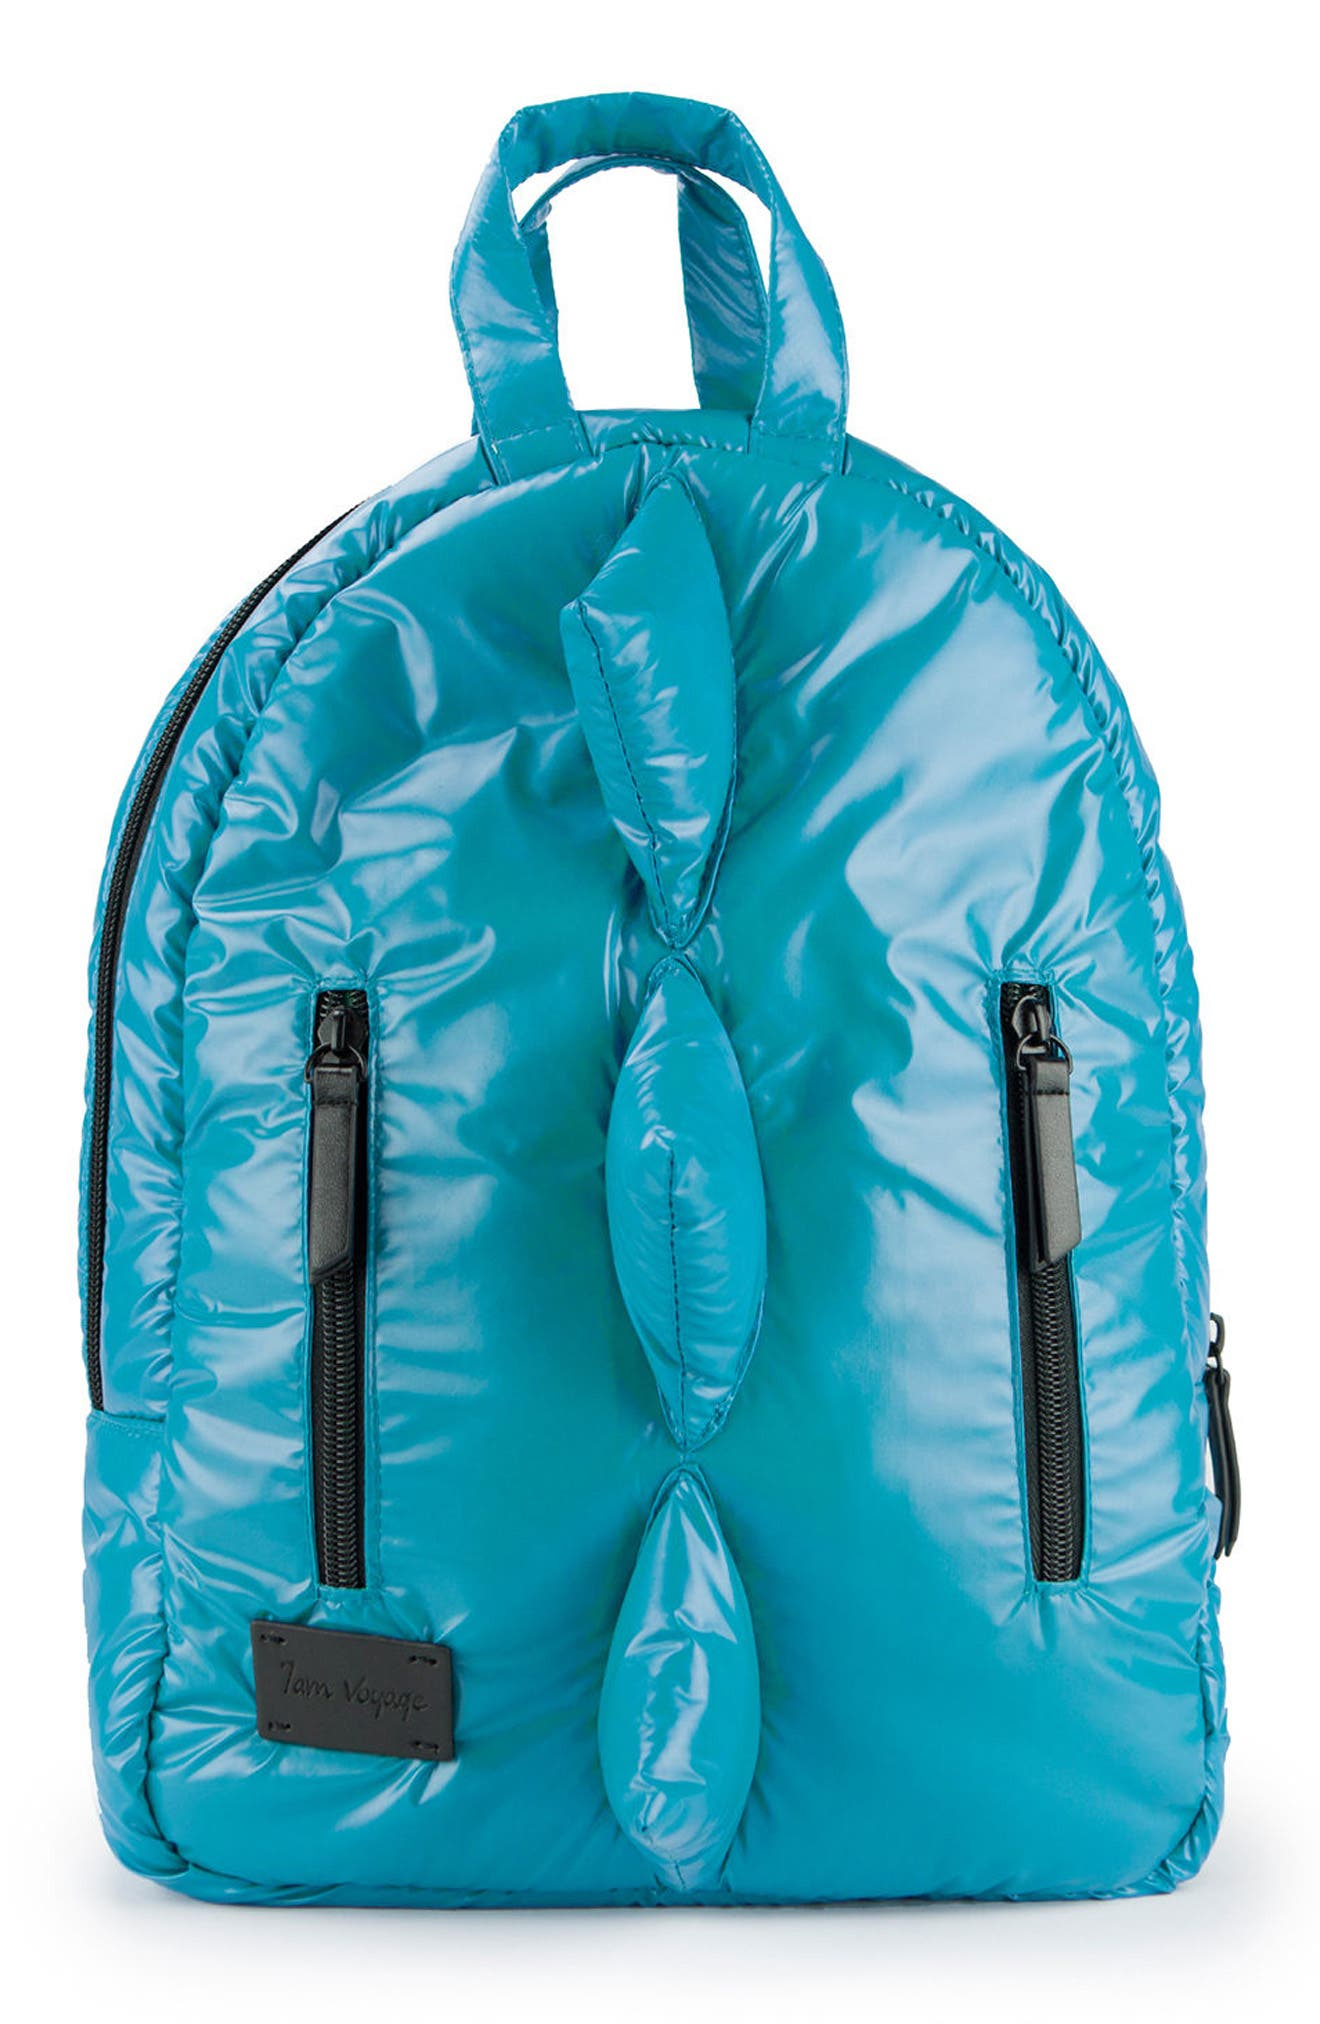 Dino Water Repellent Mini Backpack,                             Main thumbnail 1, color,                             Teal